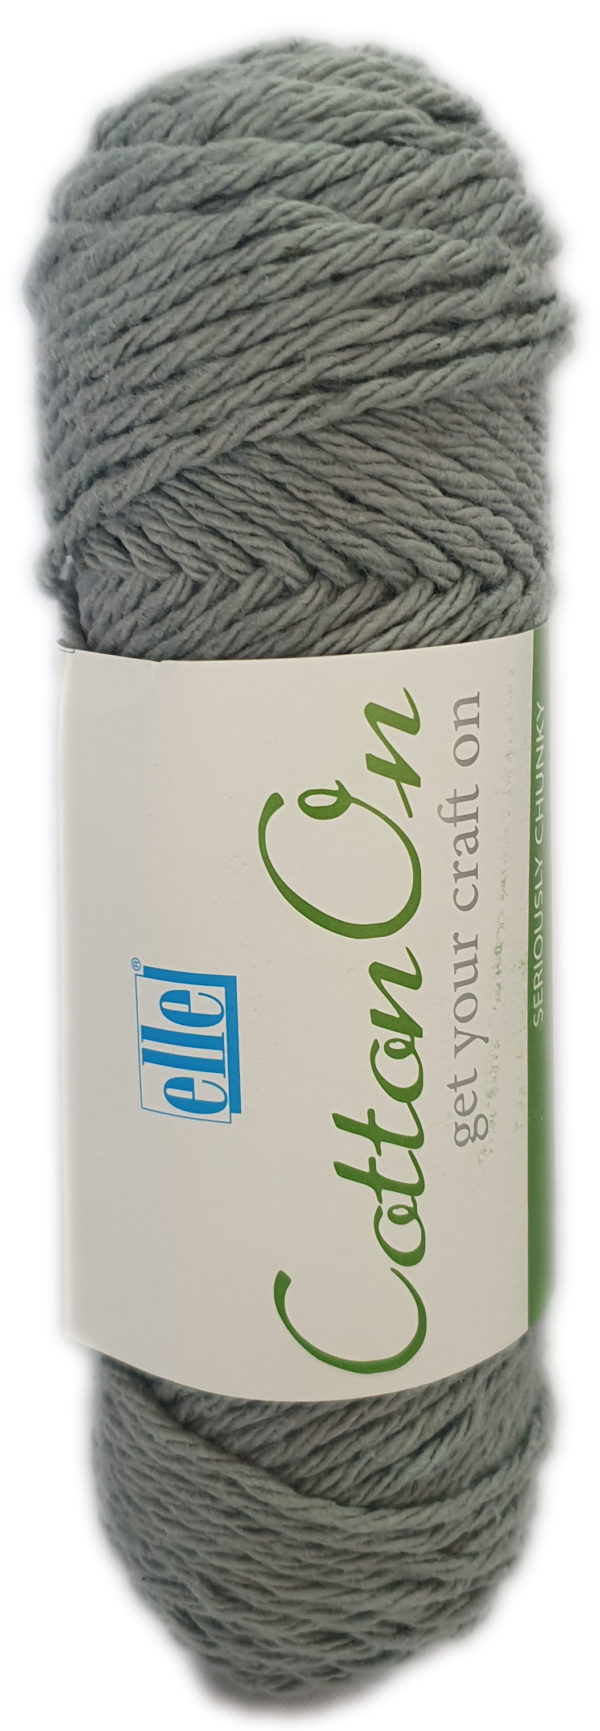 COTTON ON SERIOUSLY CHUNKY 100g-COL.751 GREY 1